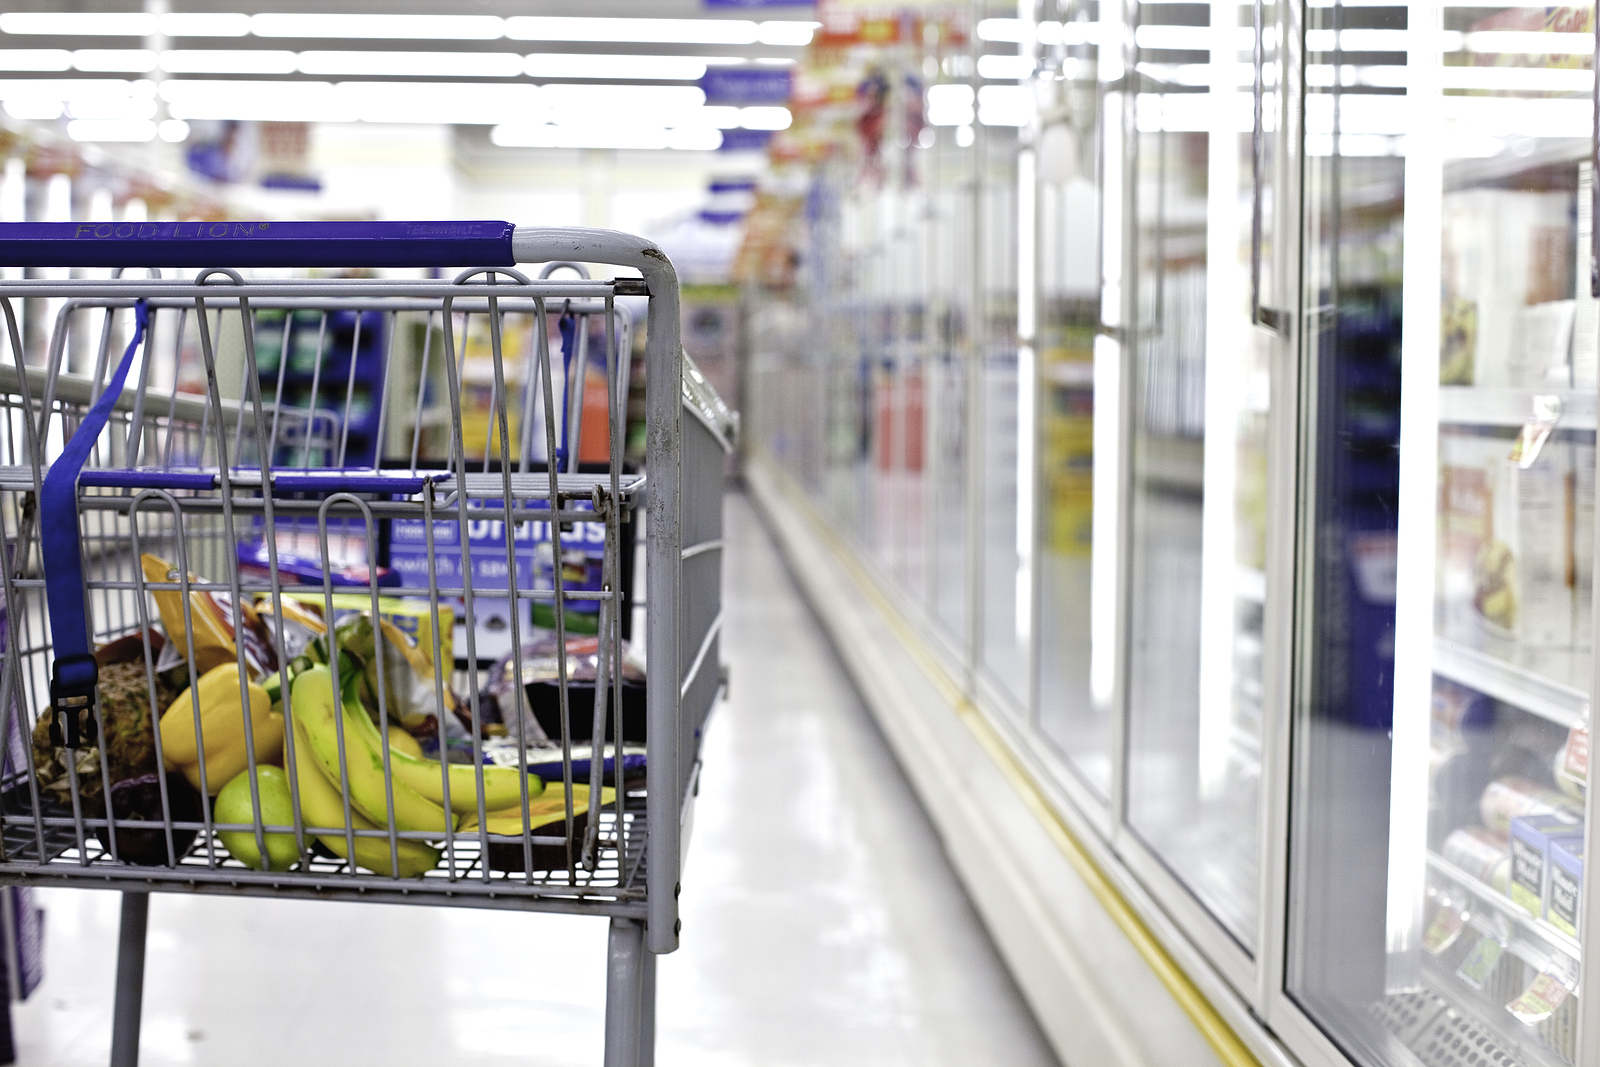 Grocery Stores and Retail Shopping